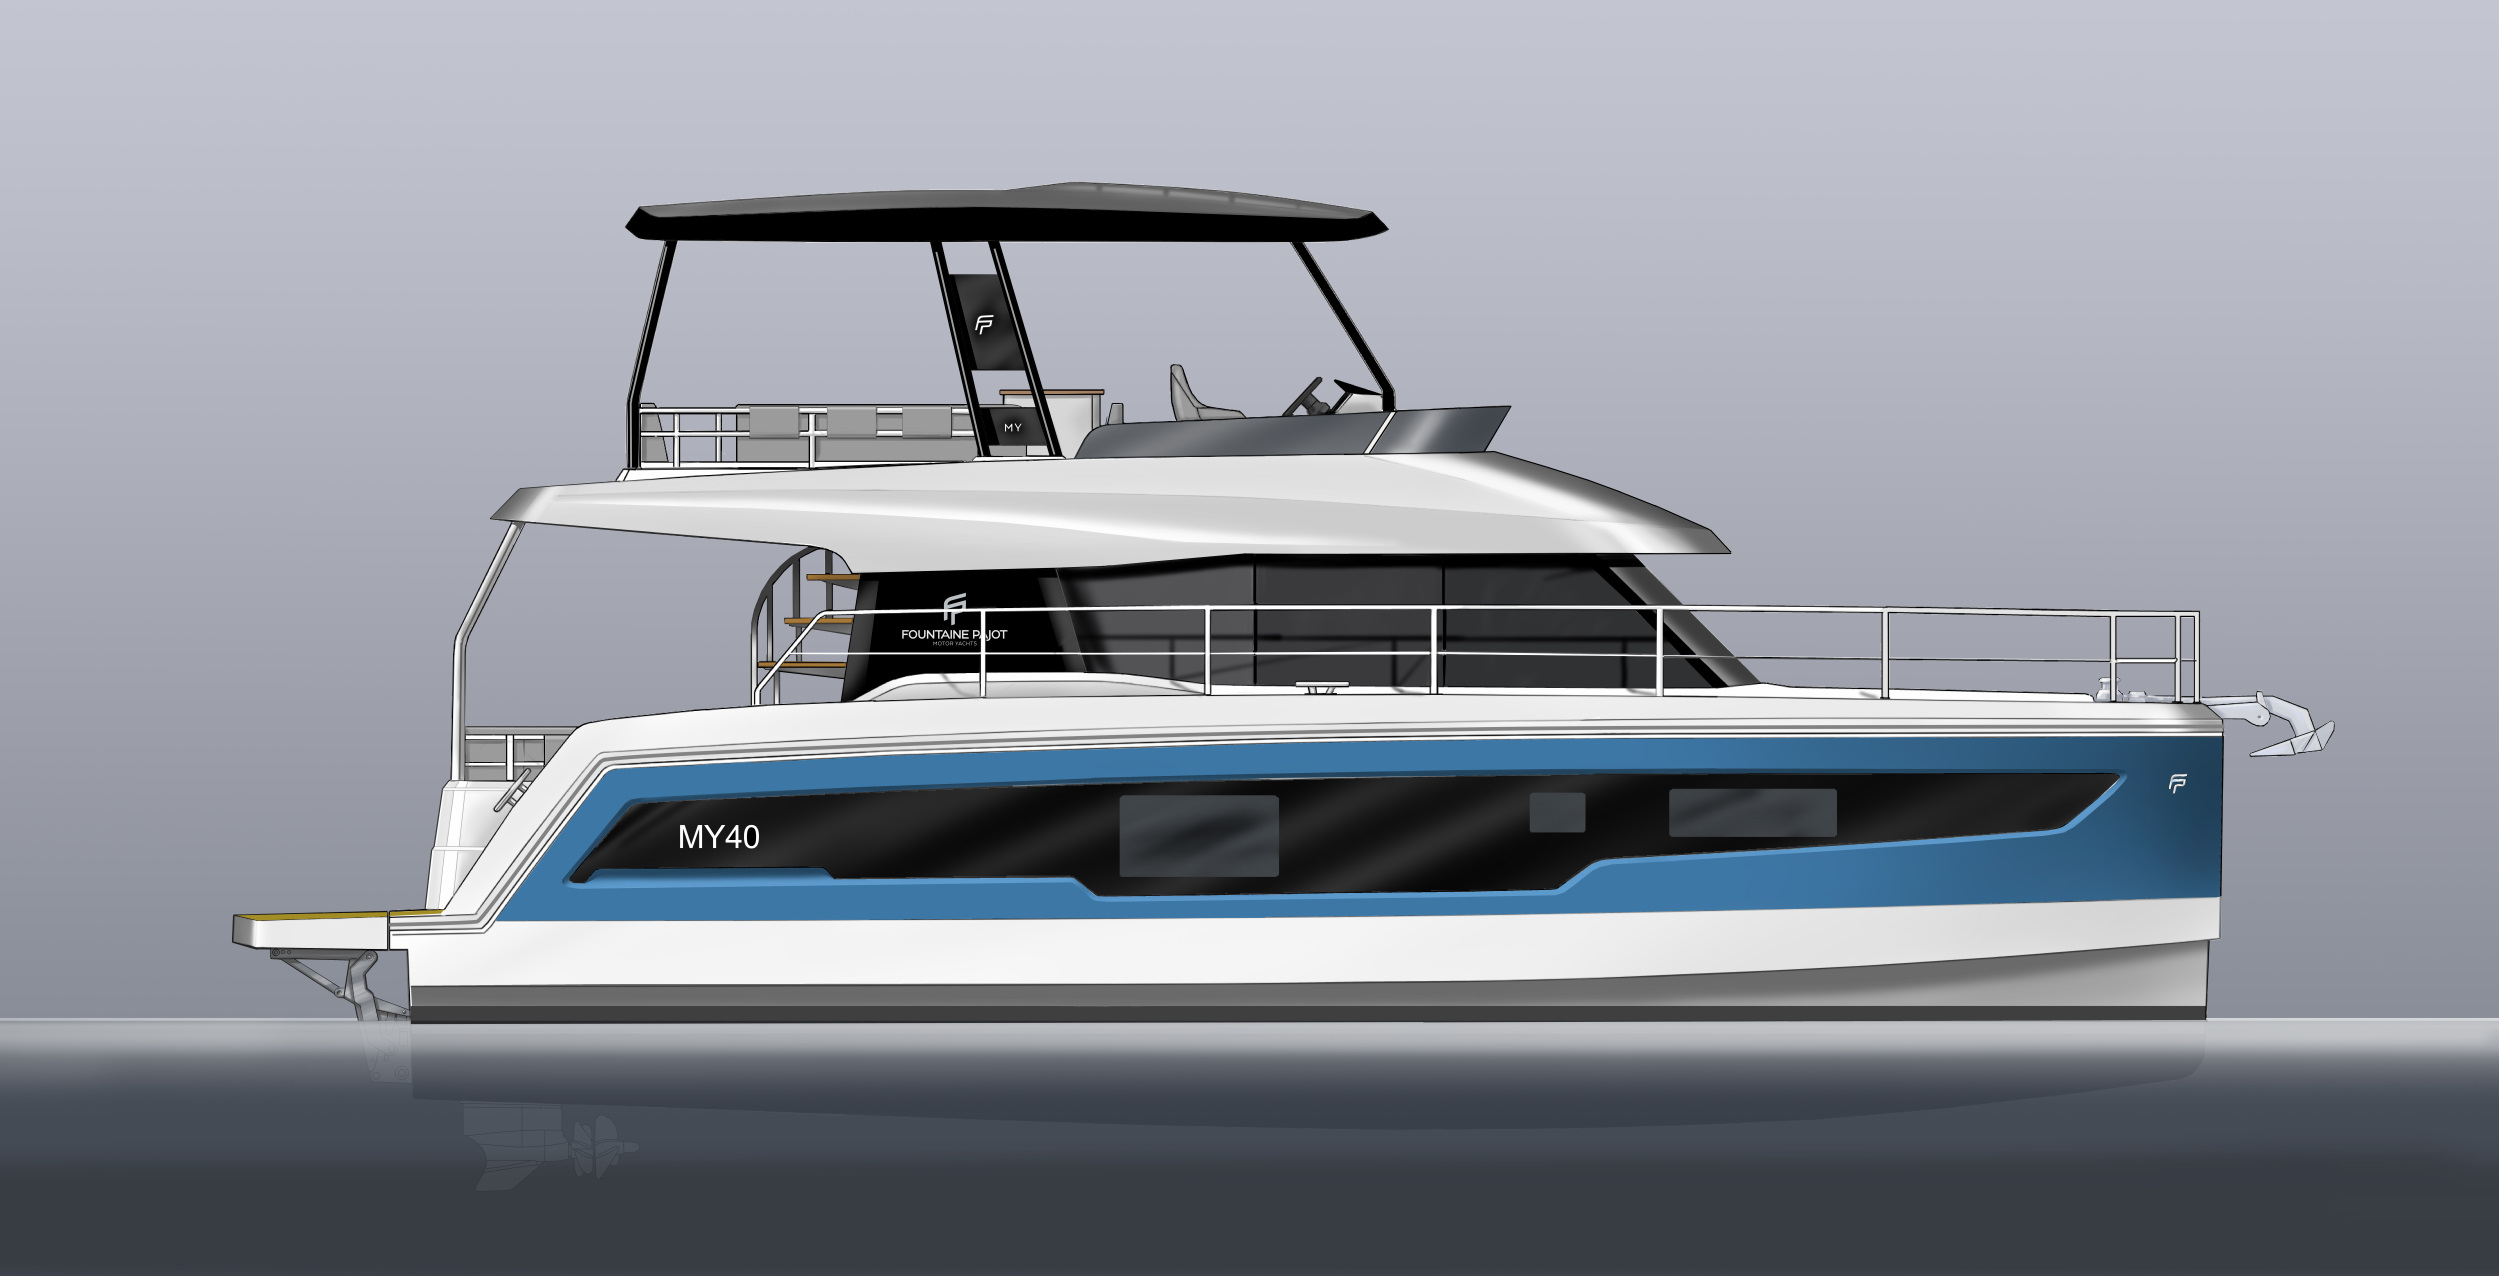 New Power Catamarans for Sale 2021 MY 40 Boat Highlights